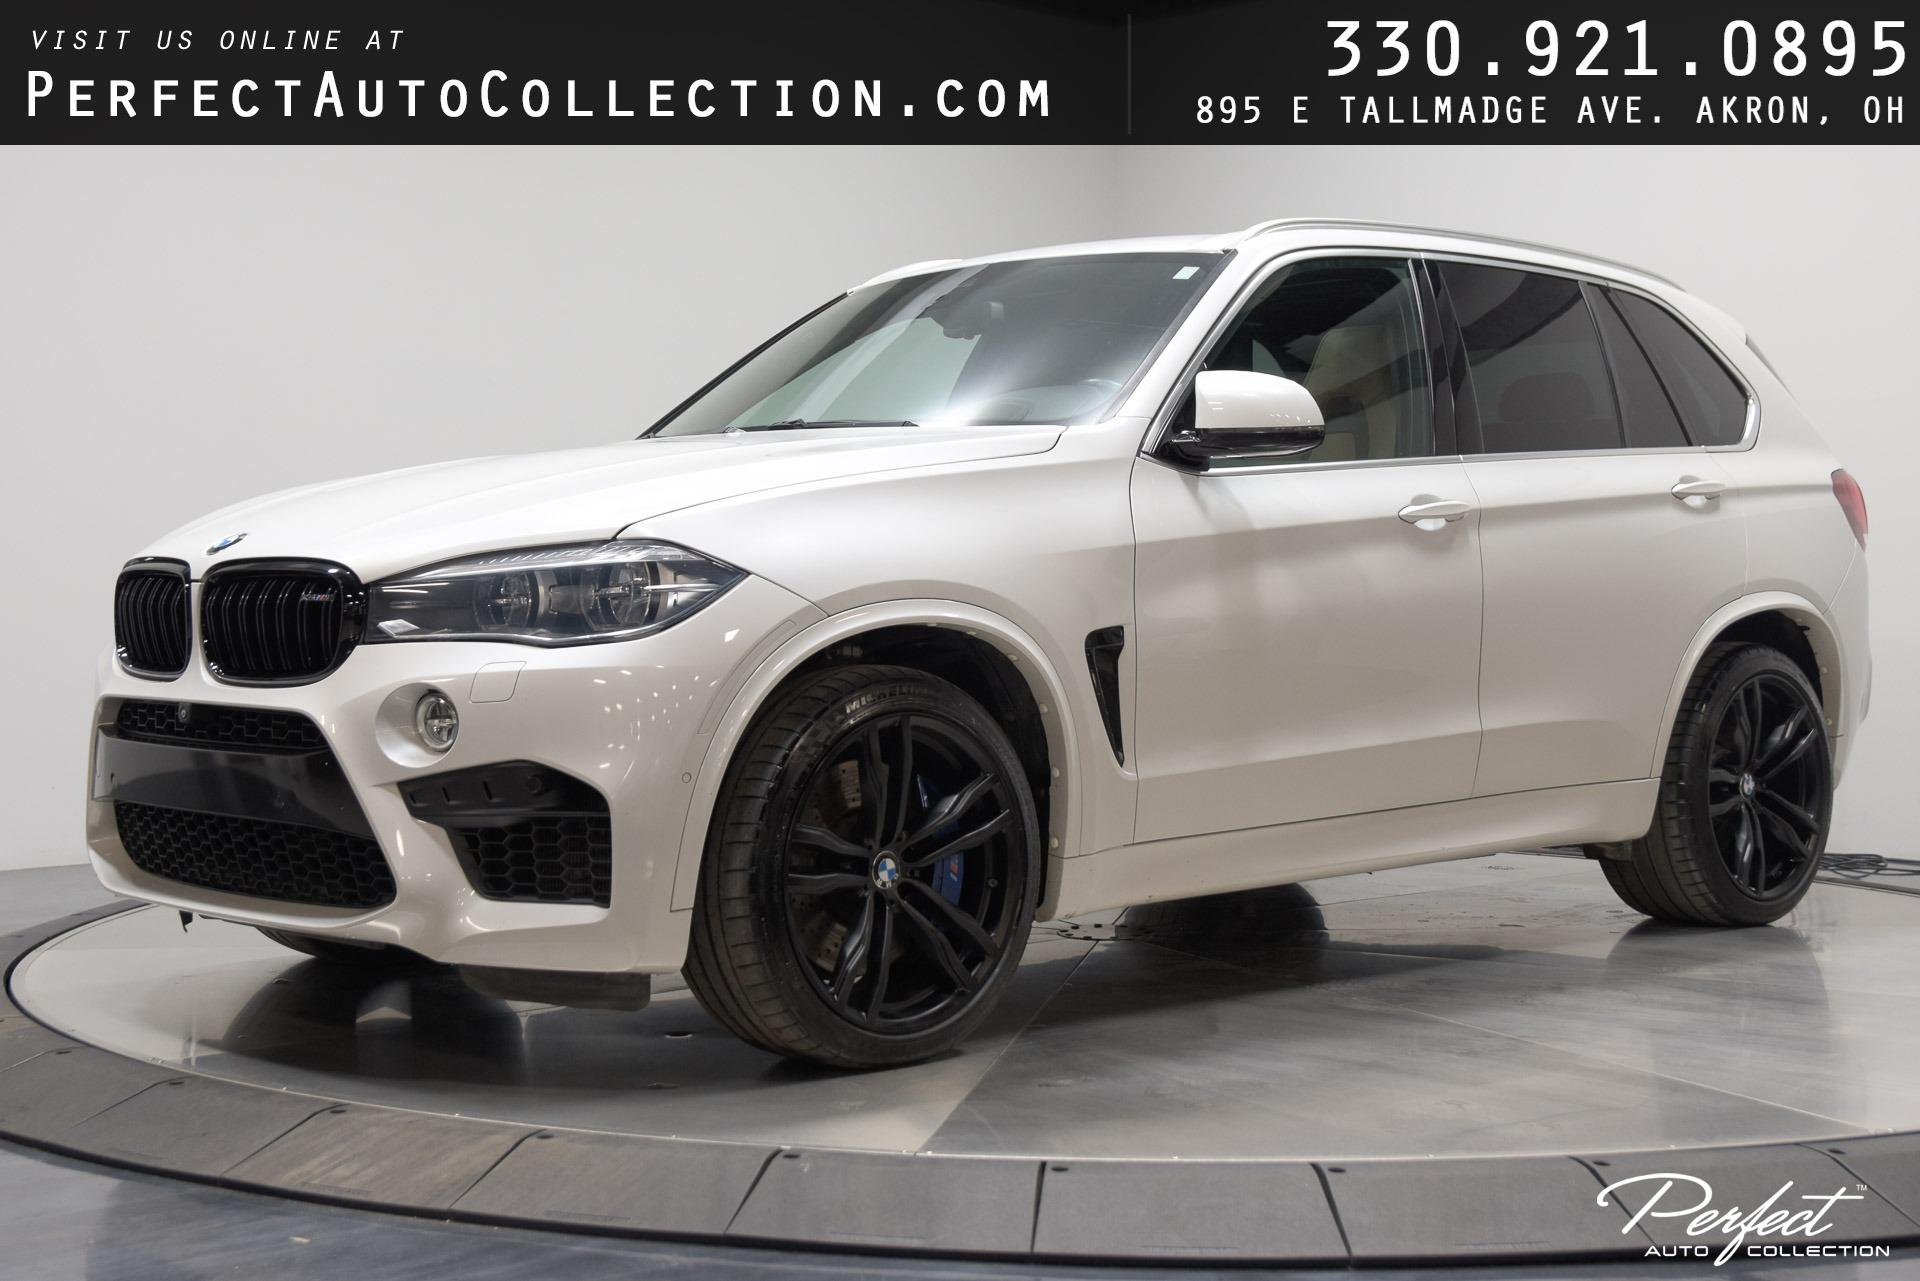 Used 2017 BMW X5 M for sale $54,995 at Perfect Auto Collection in Akron OH 44310 1